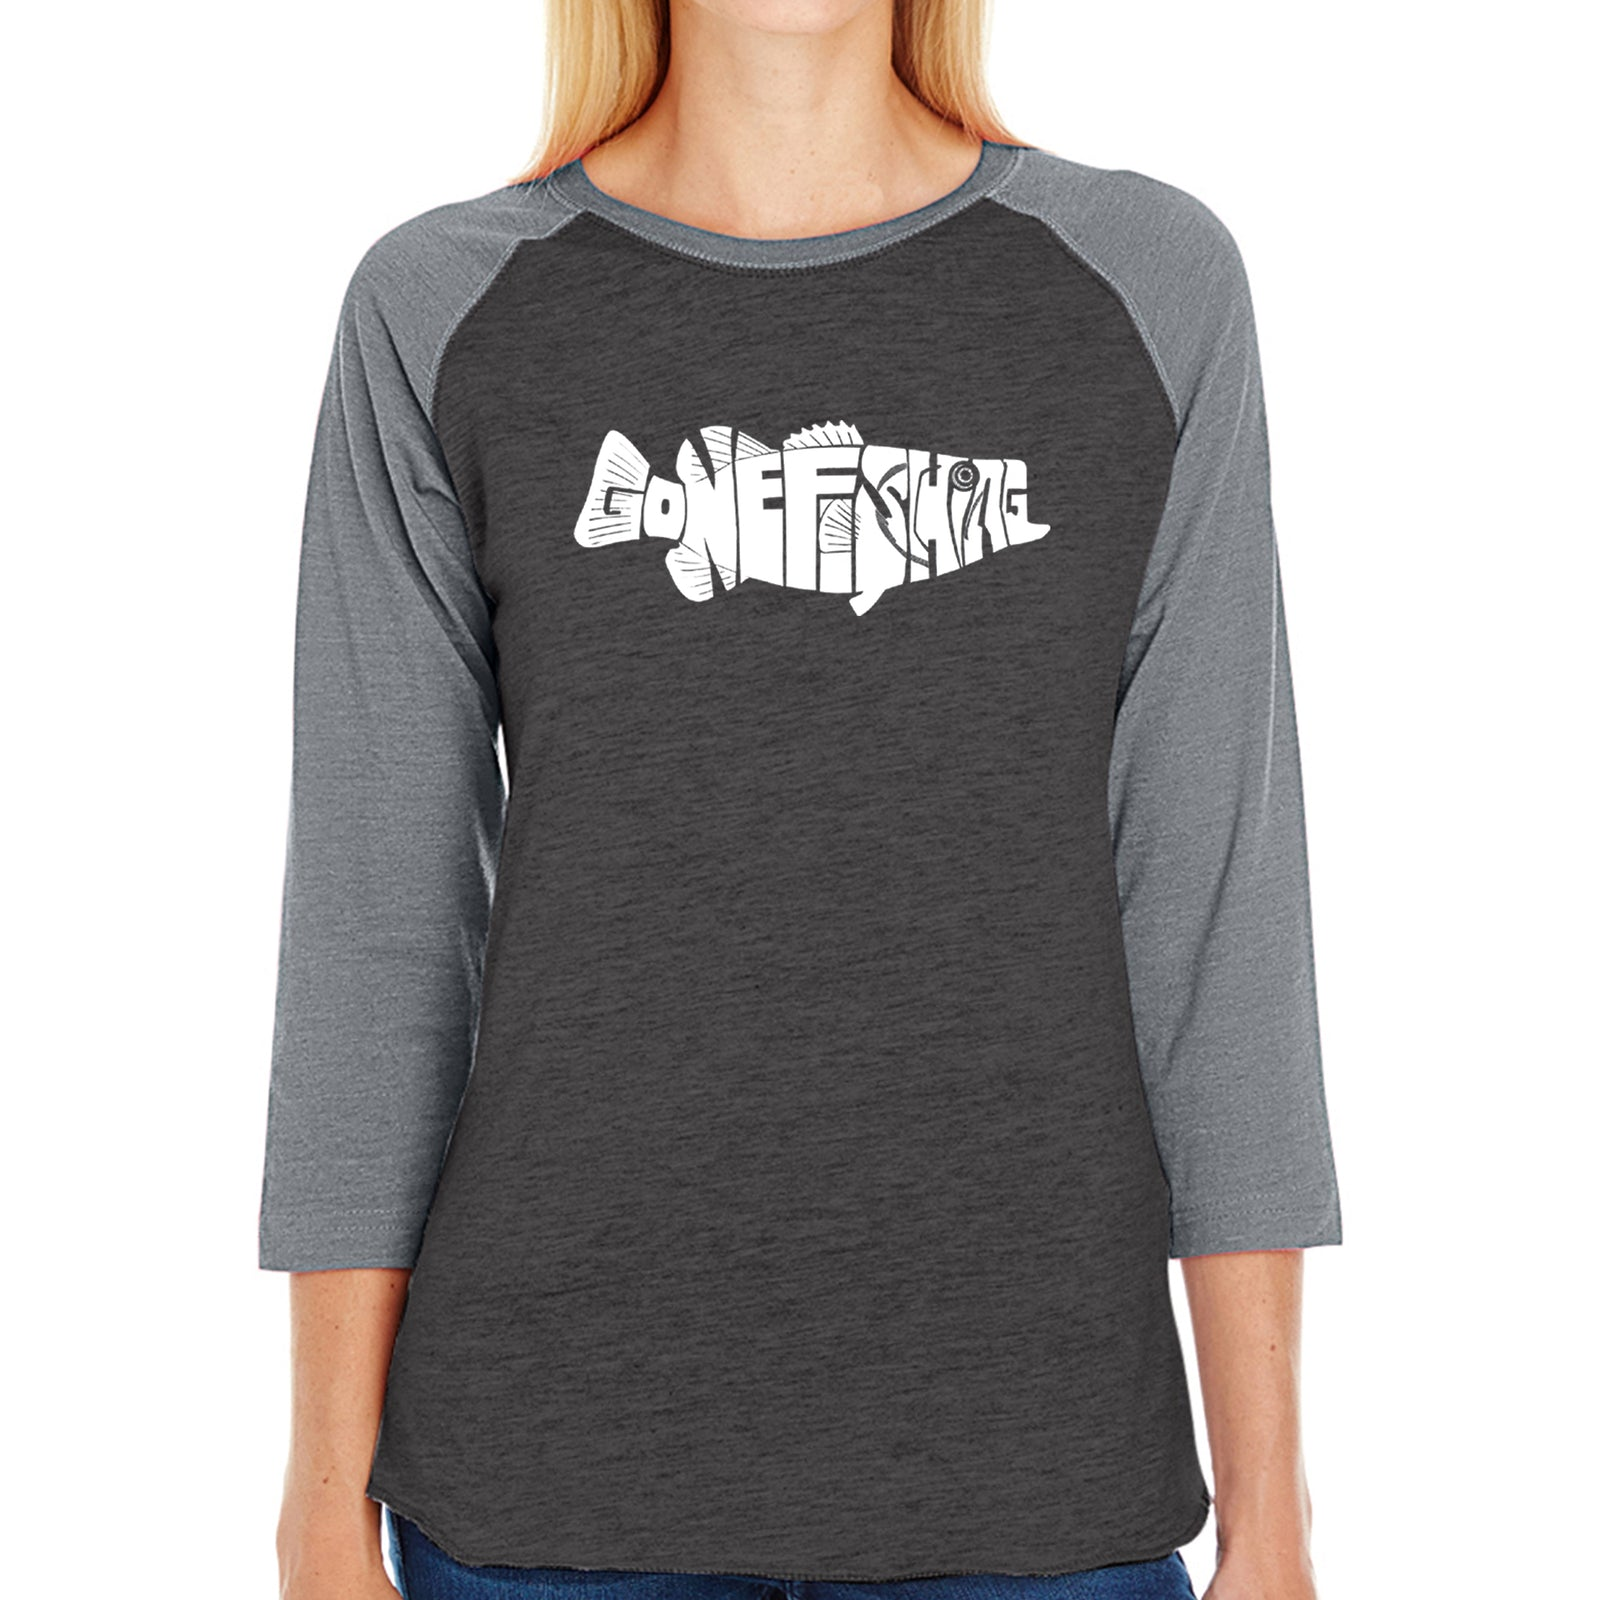 Women's Raglan Baseball Word Art T-shirt - Bass - Gone Fishing